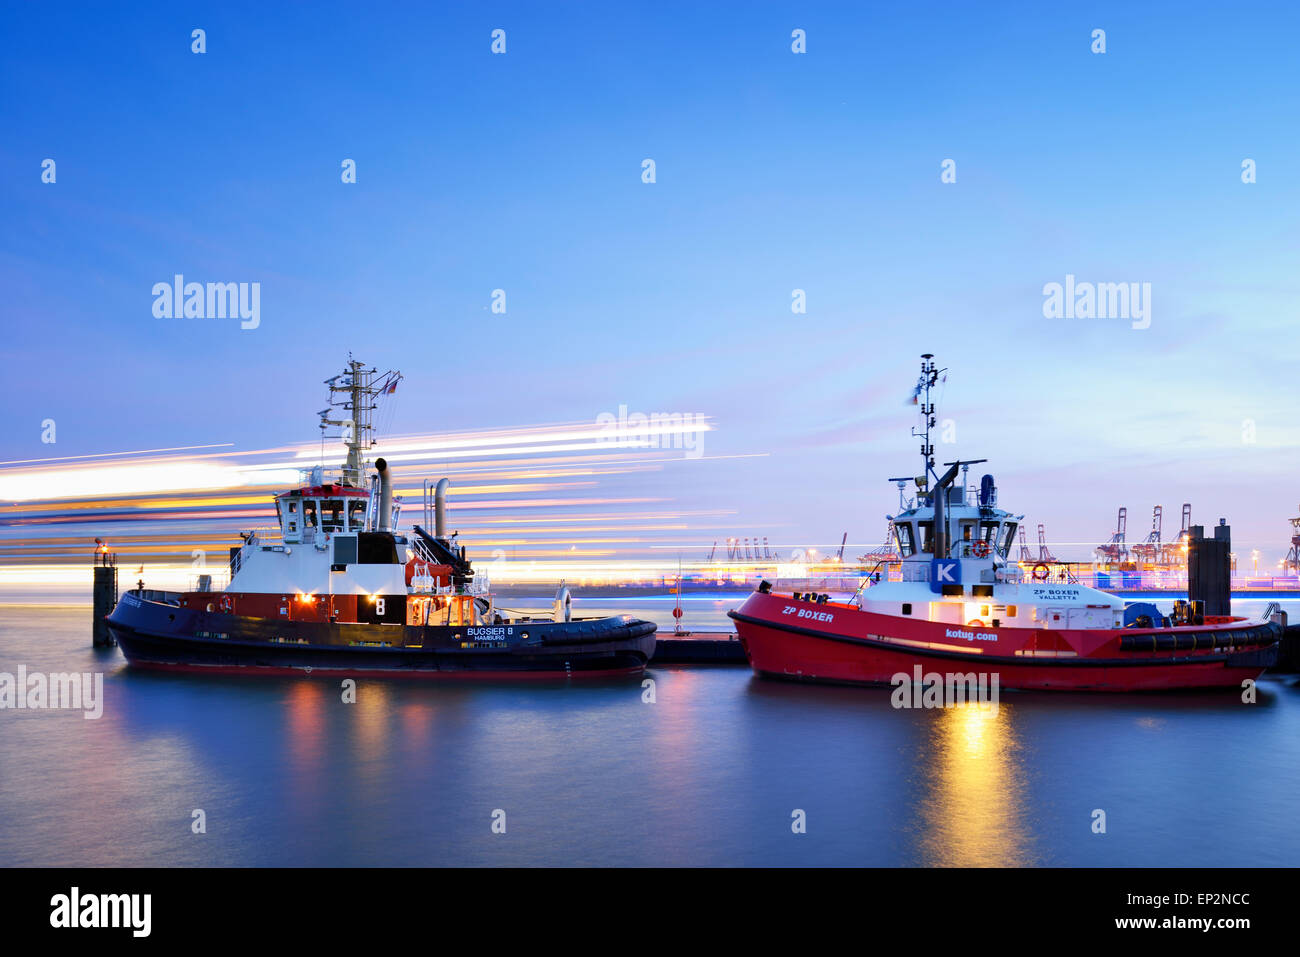 Germany, Hamburg, harbor with tugboats at blue hour - Stock Image